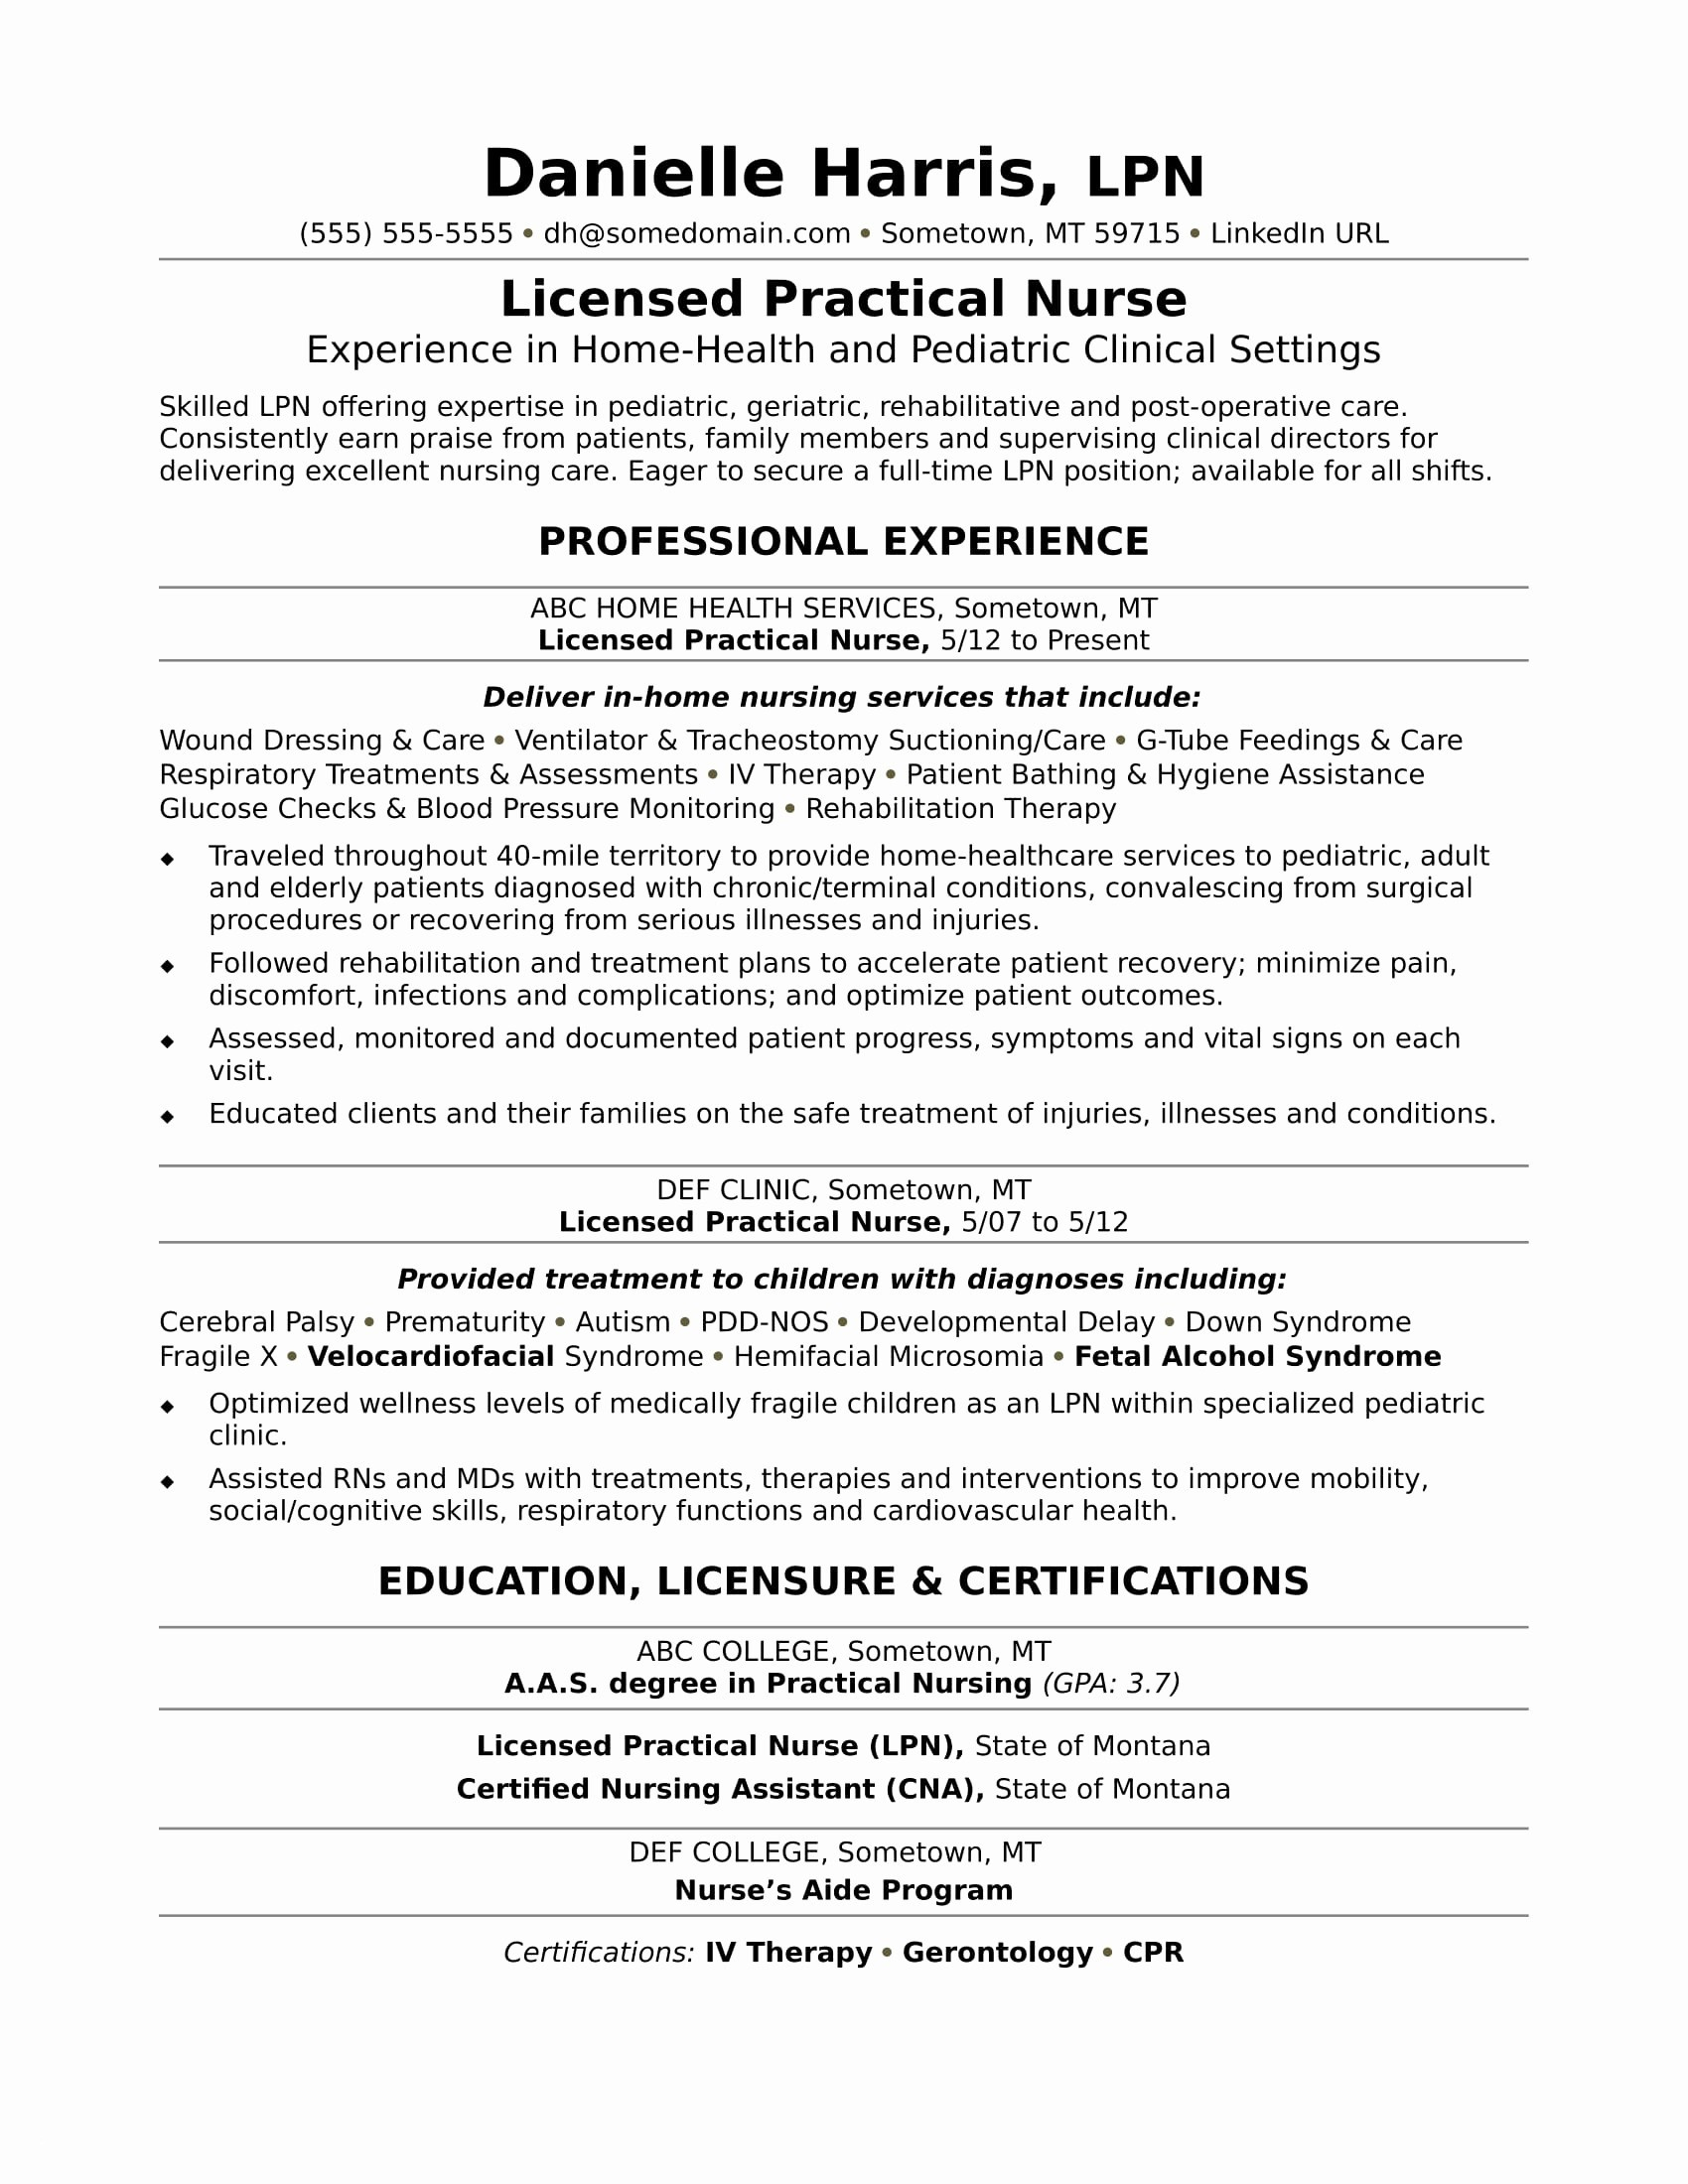 Student Nurse Resume Template - Resume for Nursing Student Luxury Resume for Nurse Luxury New Nurse